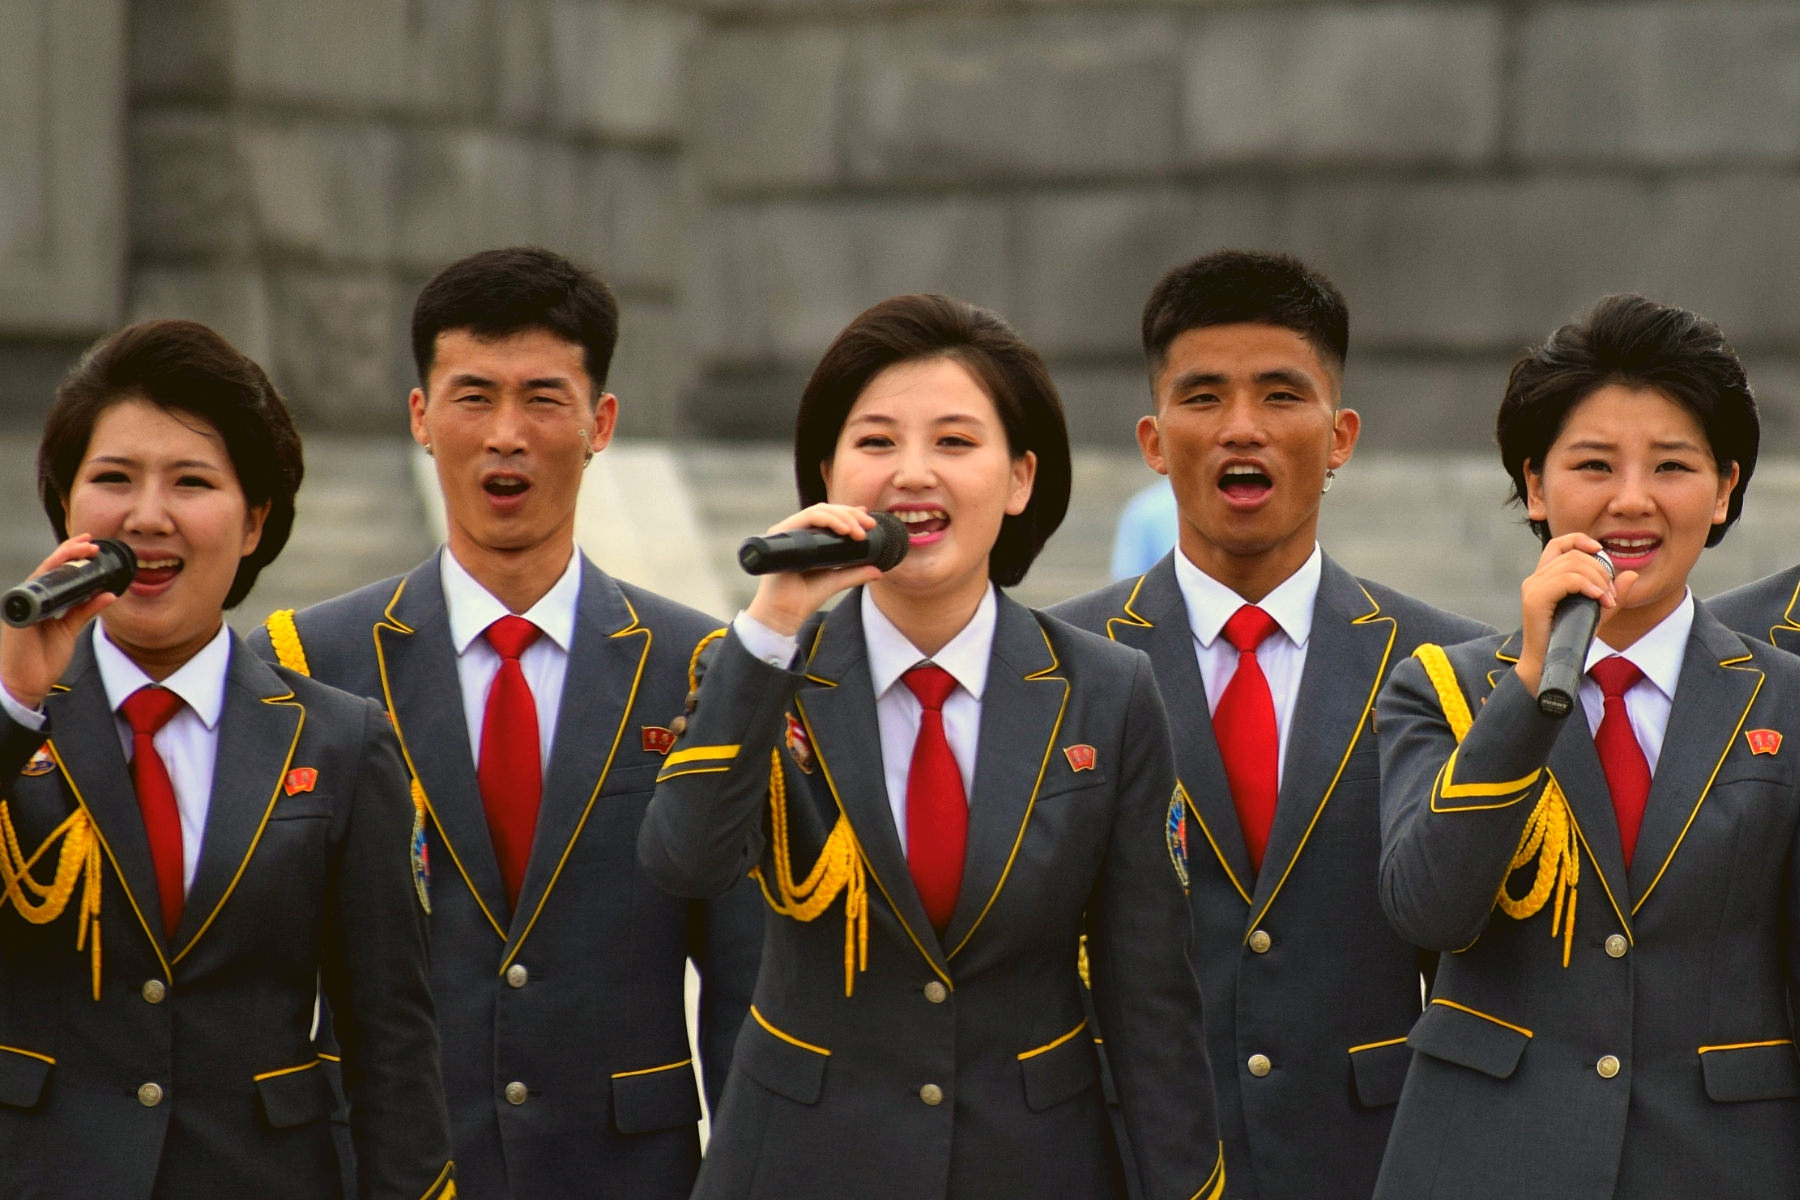 Performance by the Party Monument in Pyongang held by singers in North Korea to celebrate the Liberation of Korea from Japanese colonial rule (15 agosto). Picture taken by KTG. Join us to explore North Korea (DPRK)